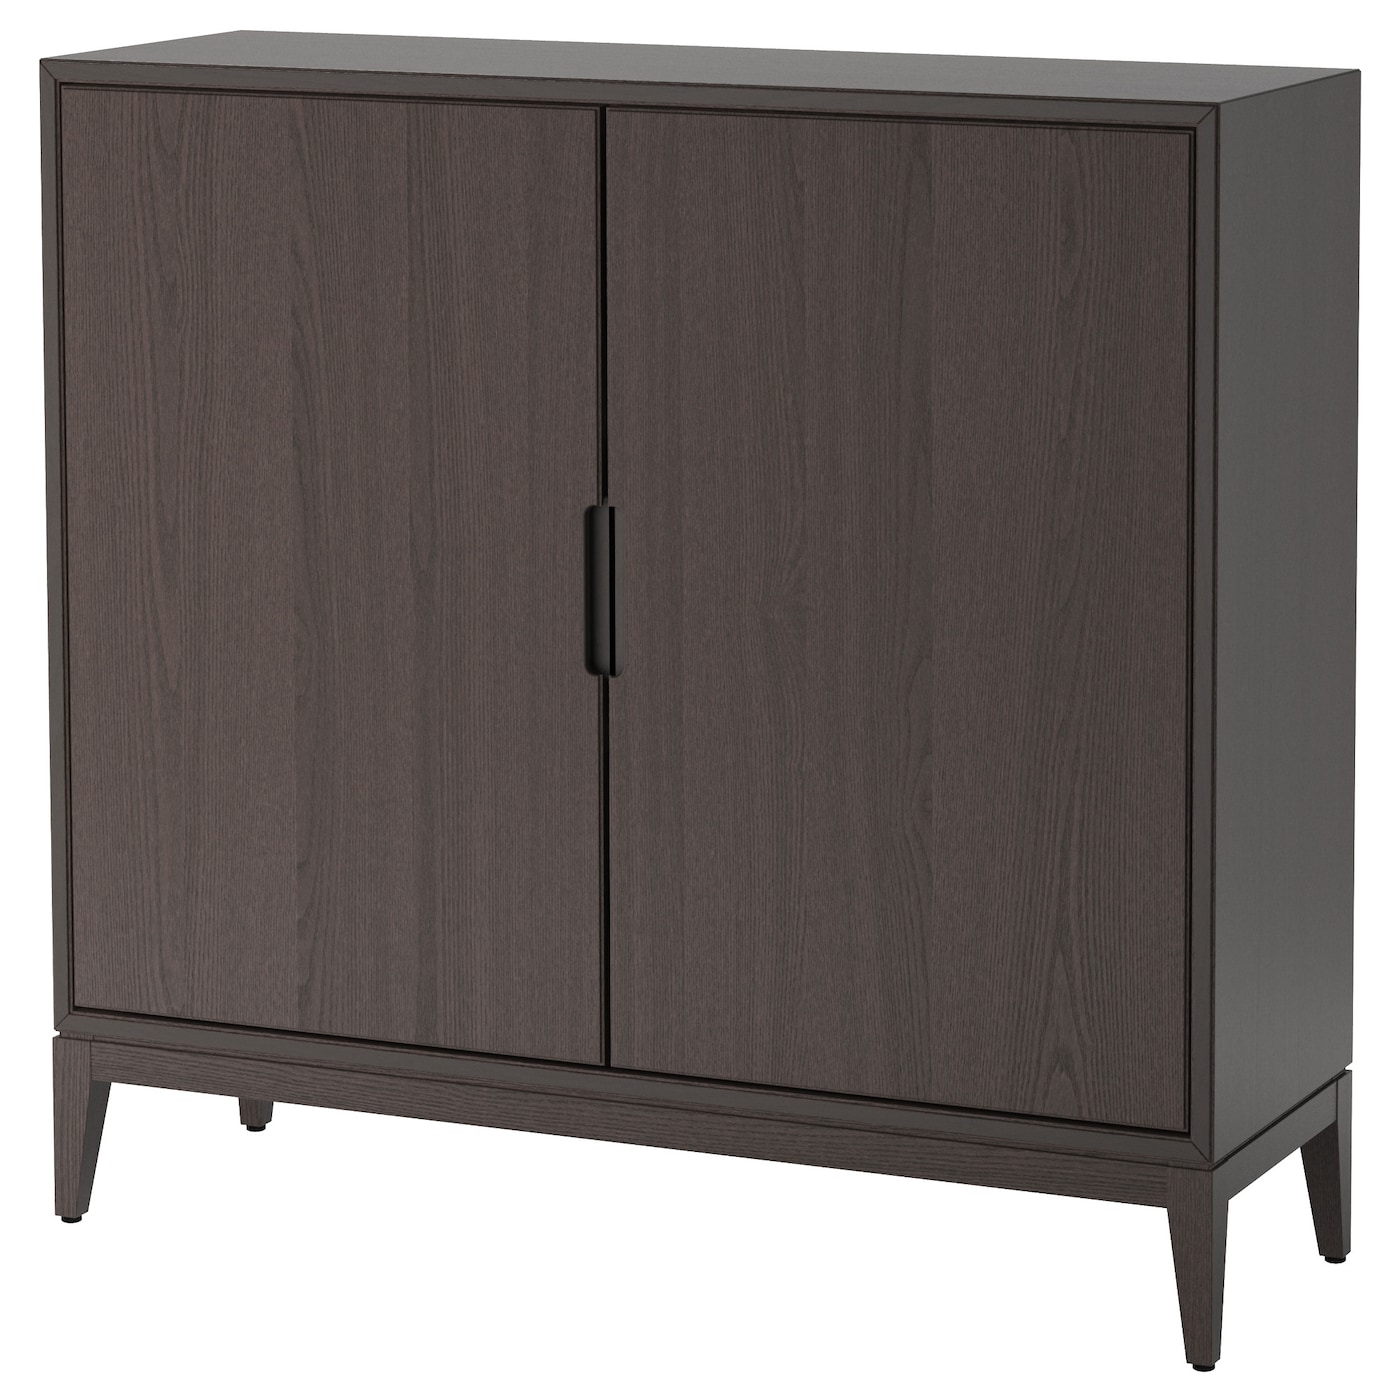 IKEA REGISSÖR cabinet The attention to detail gives the furniture a distinct handcrafted character.